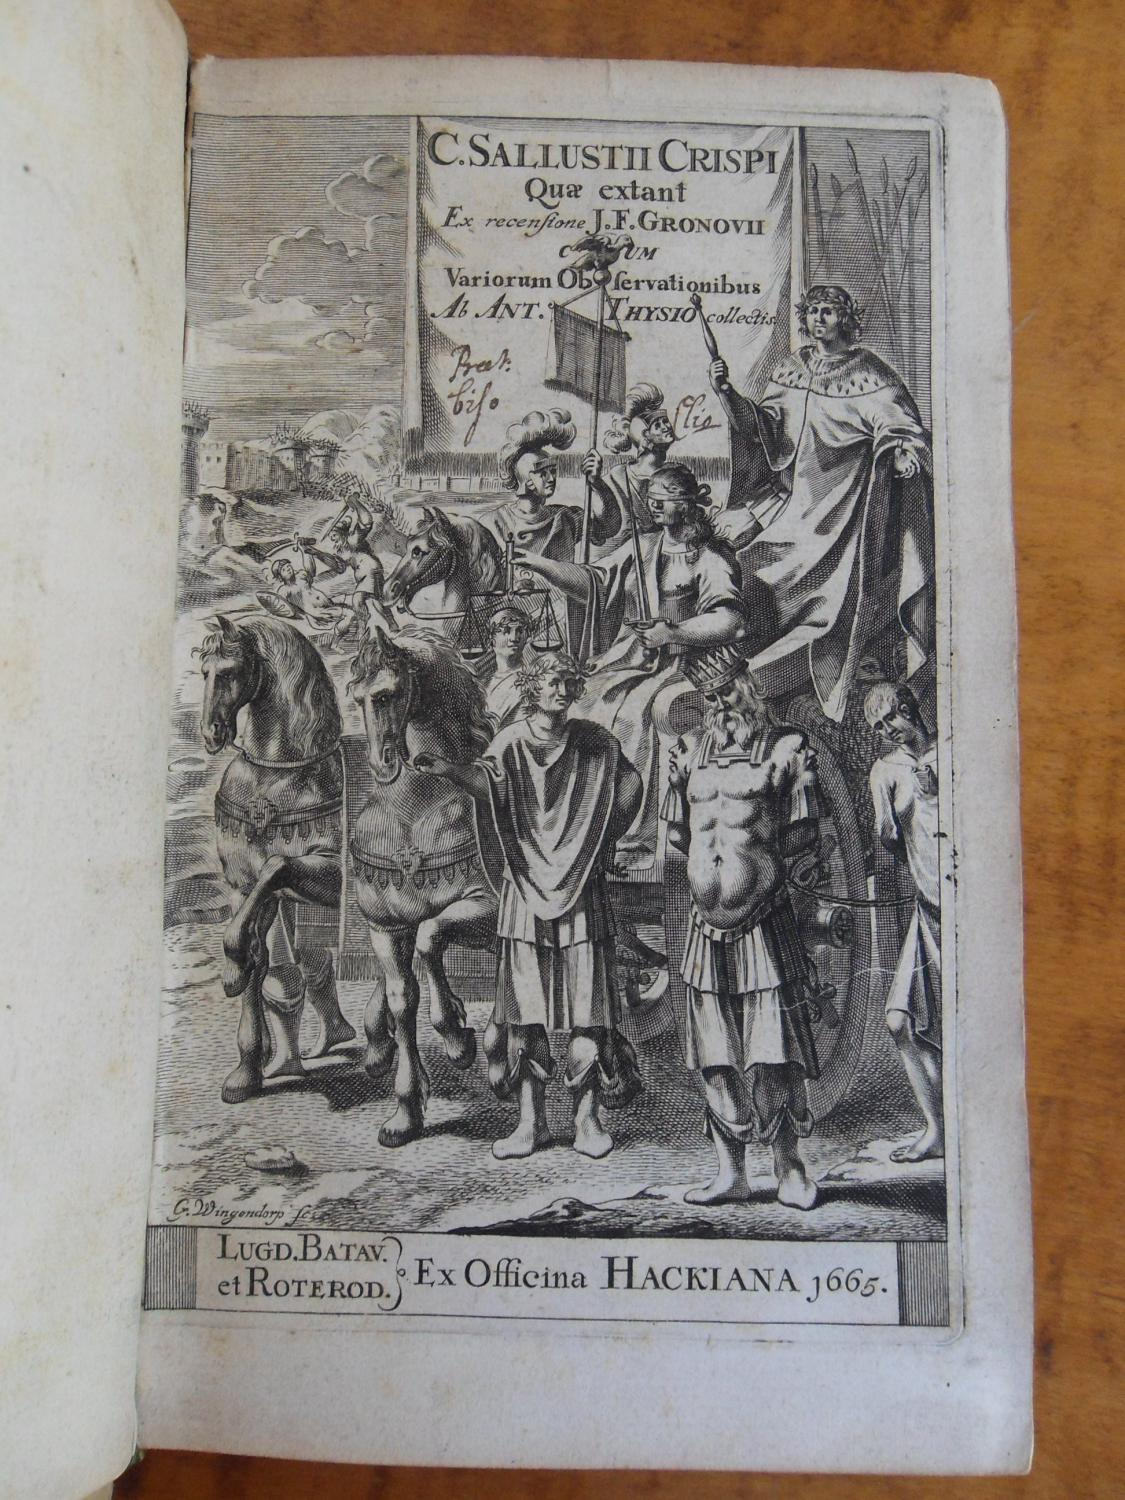 Pieces Montees Fr Vitry Sur Seine vialibri ~ rare books from 1665 - page 21